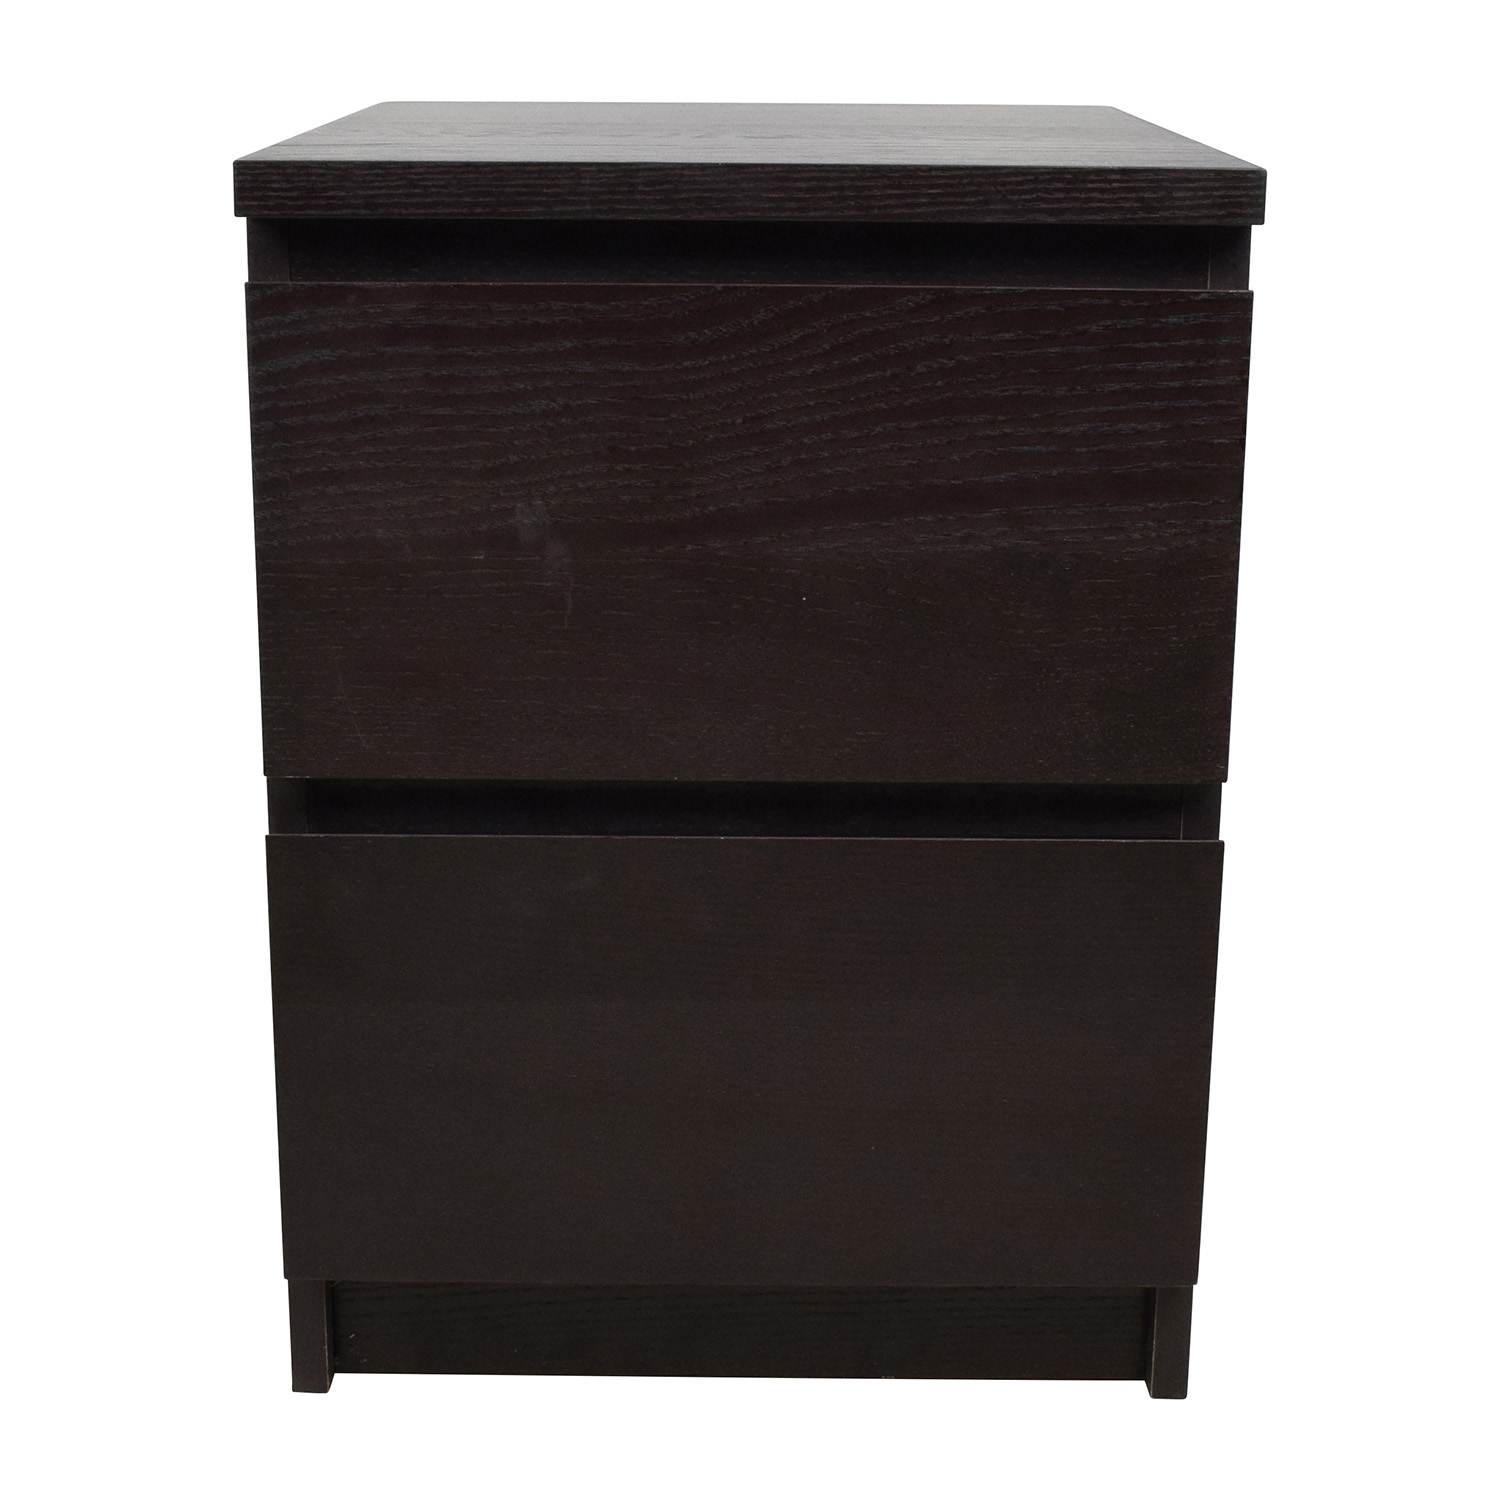 Ikea Malm Black Two Drawer Nightstand